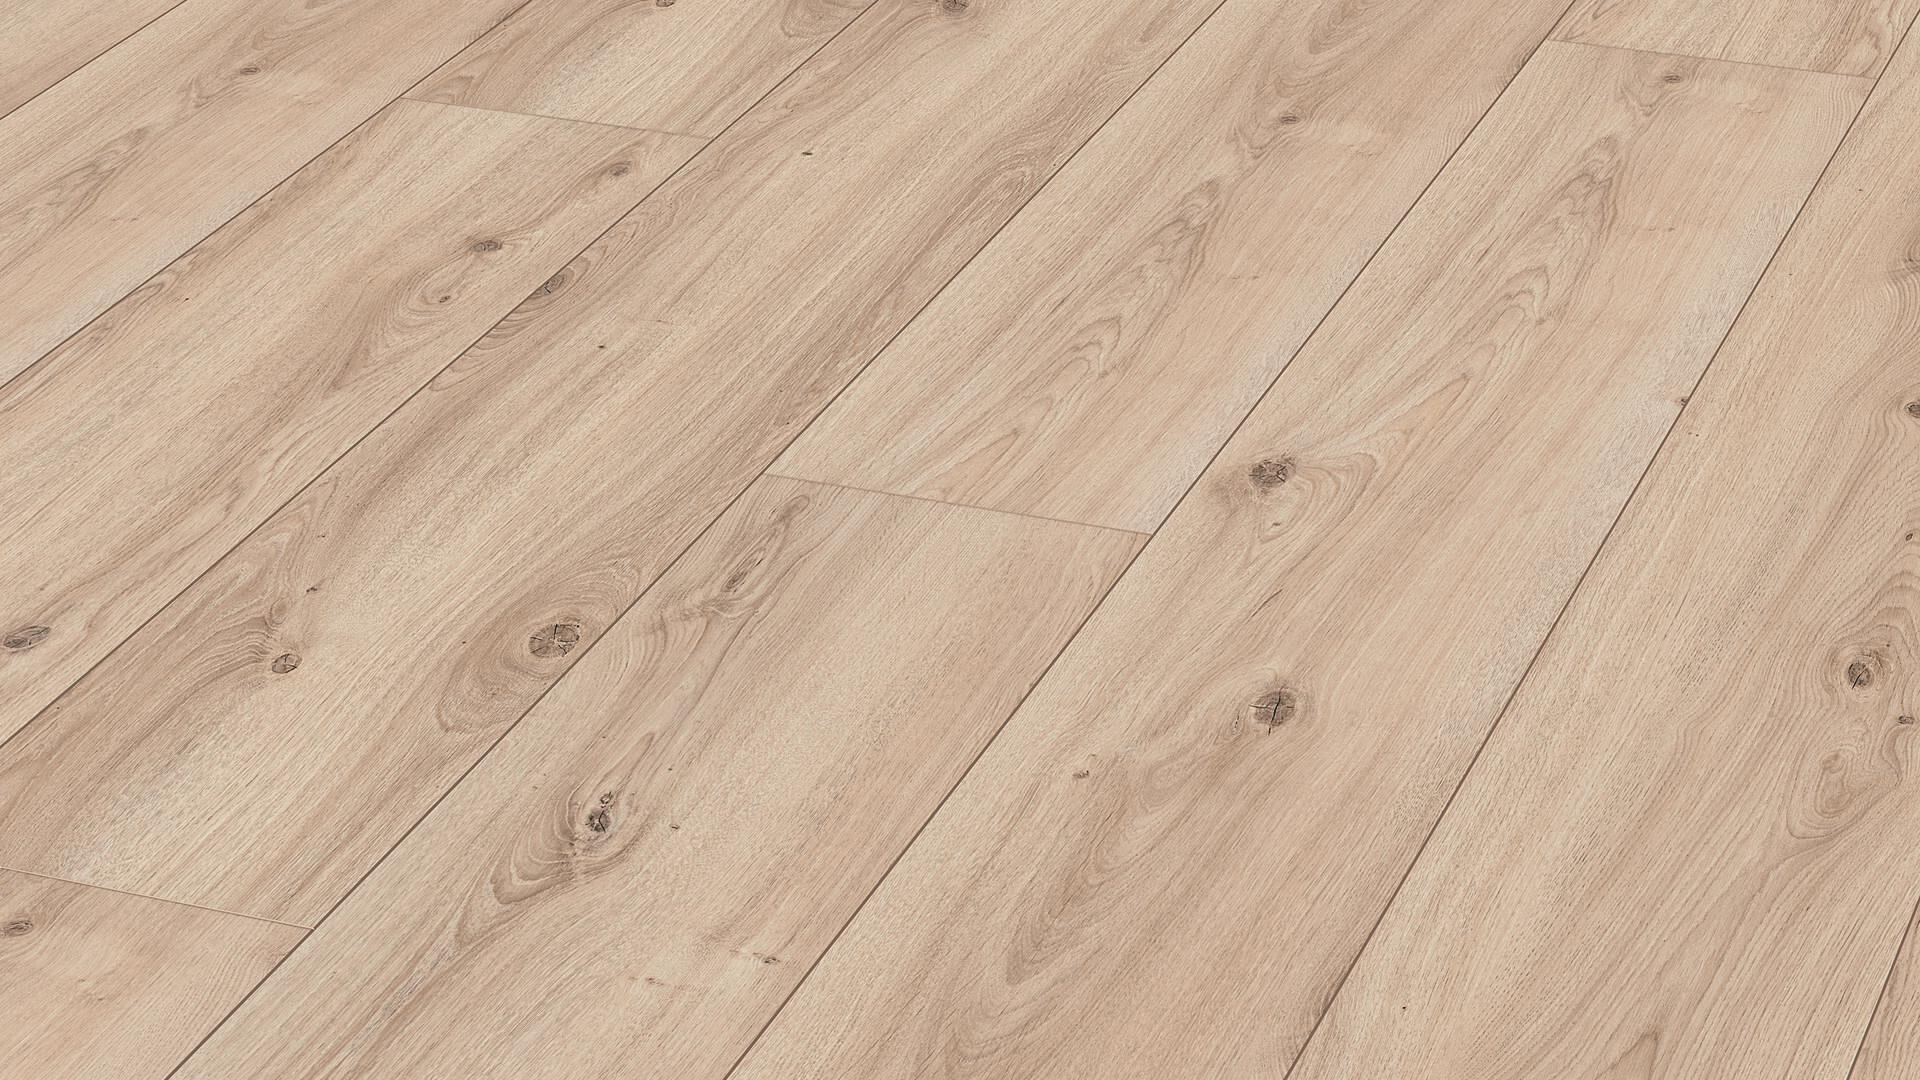 Design flooring Tecara DD 350 S Pure oak lively 6974